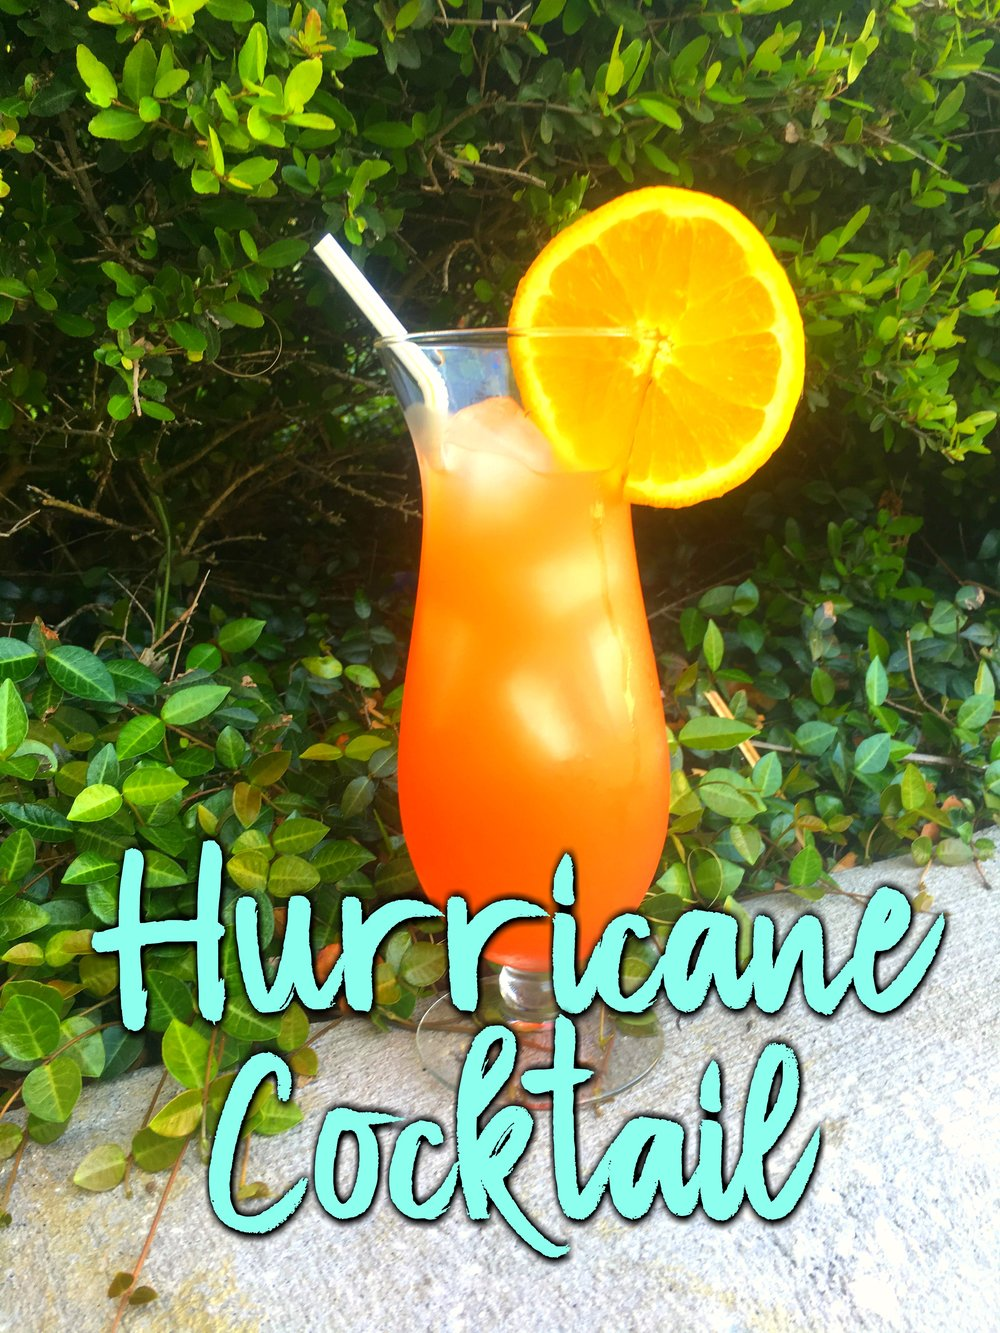 Hurricane Cocktail.jpg